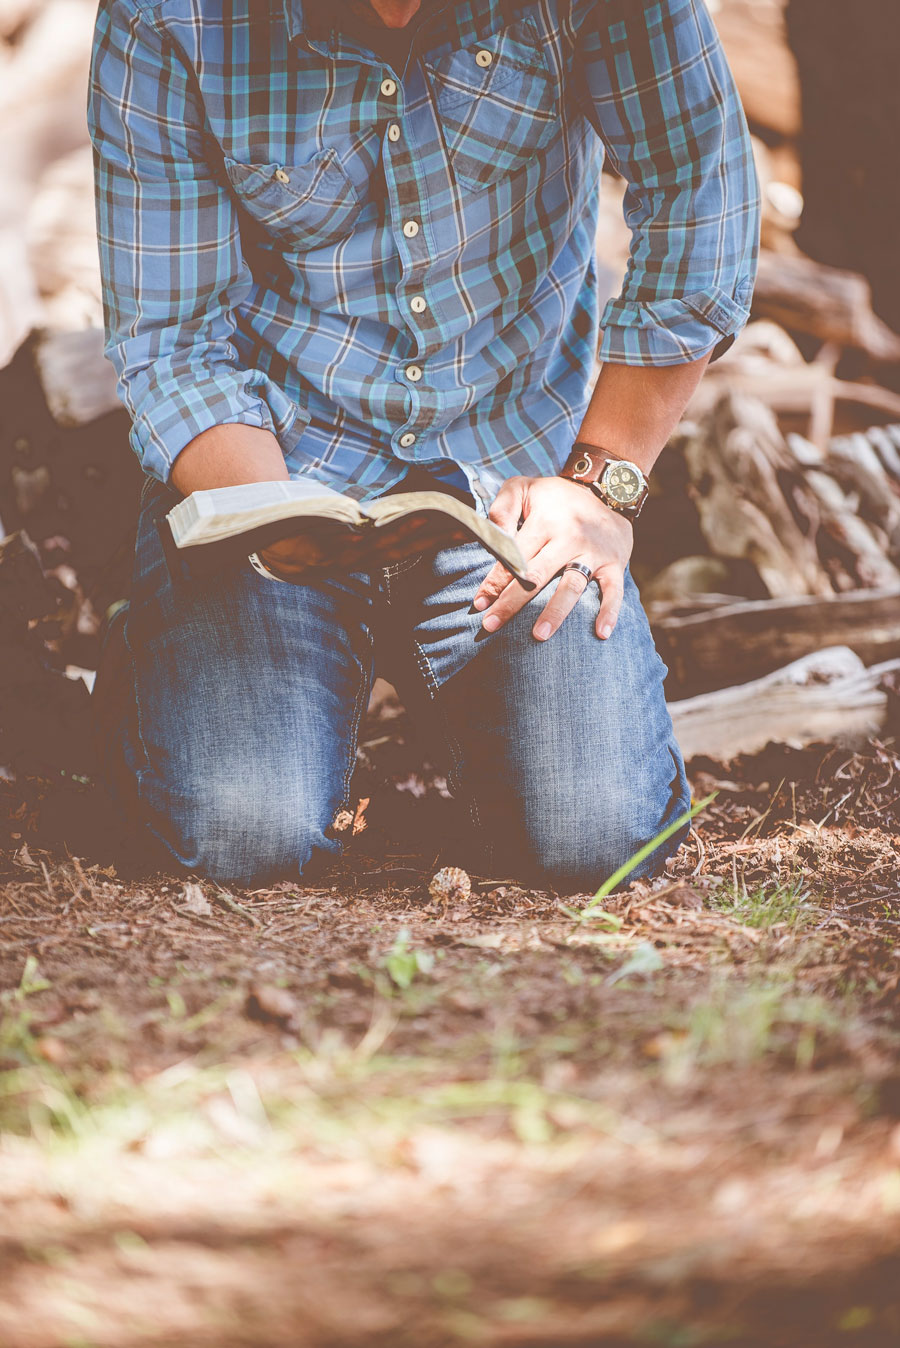 man kneeling on dirt and grass with bible